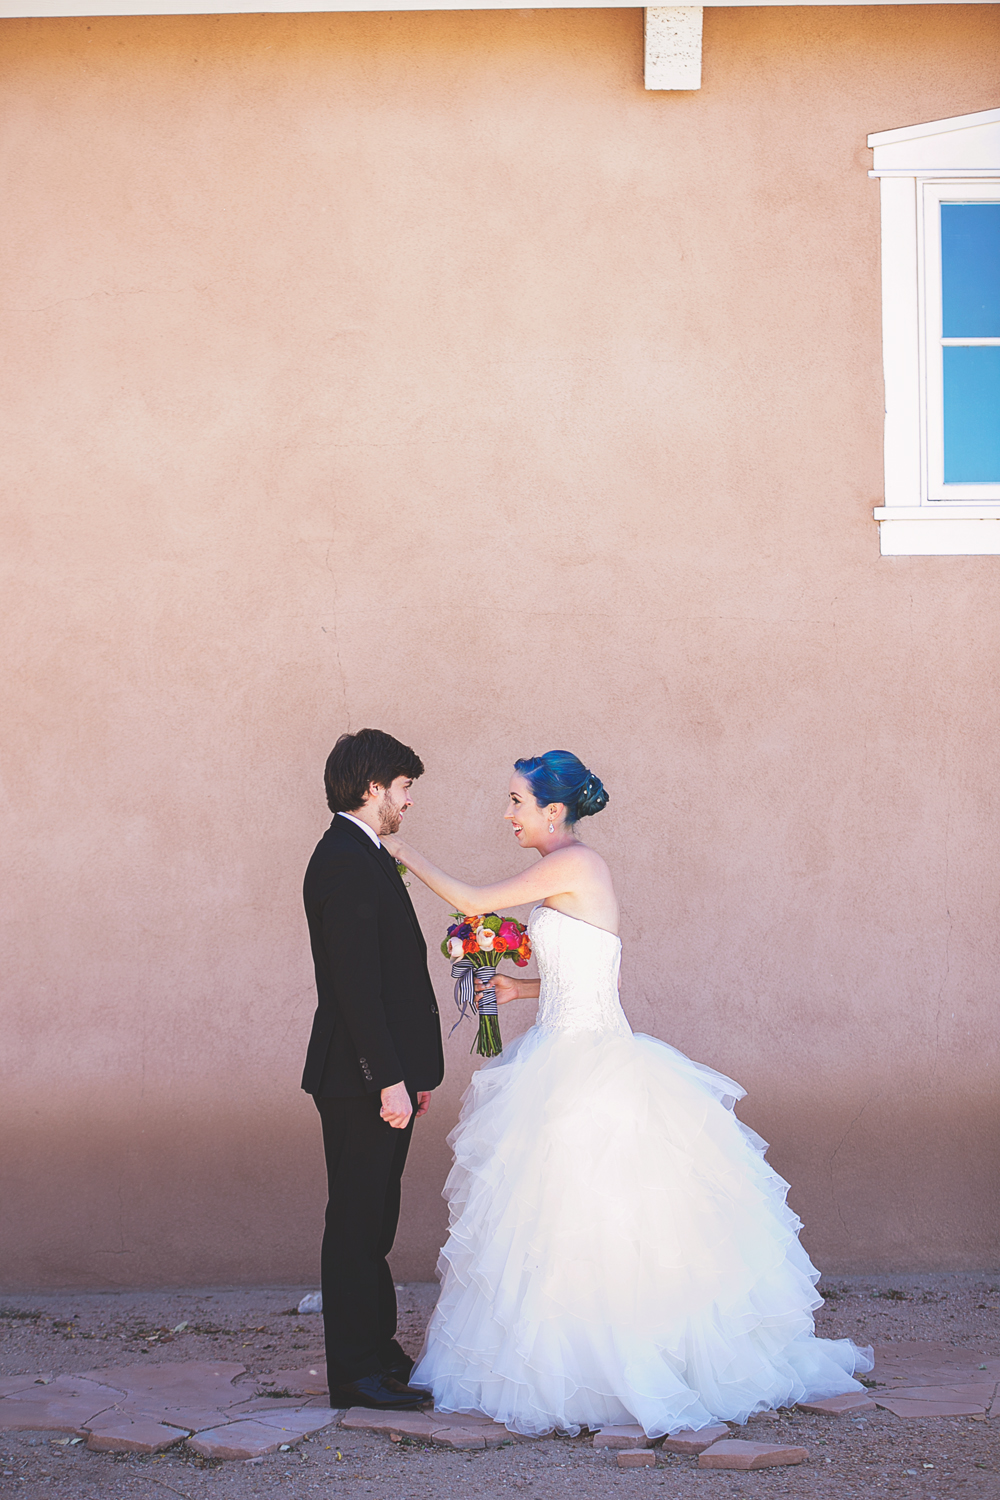 Hotel Albuquerque Wedding by Liz Anne Photography_025.jpg